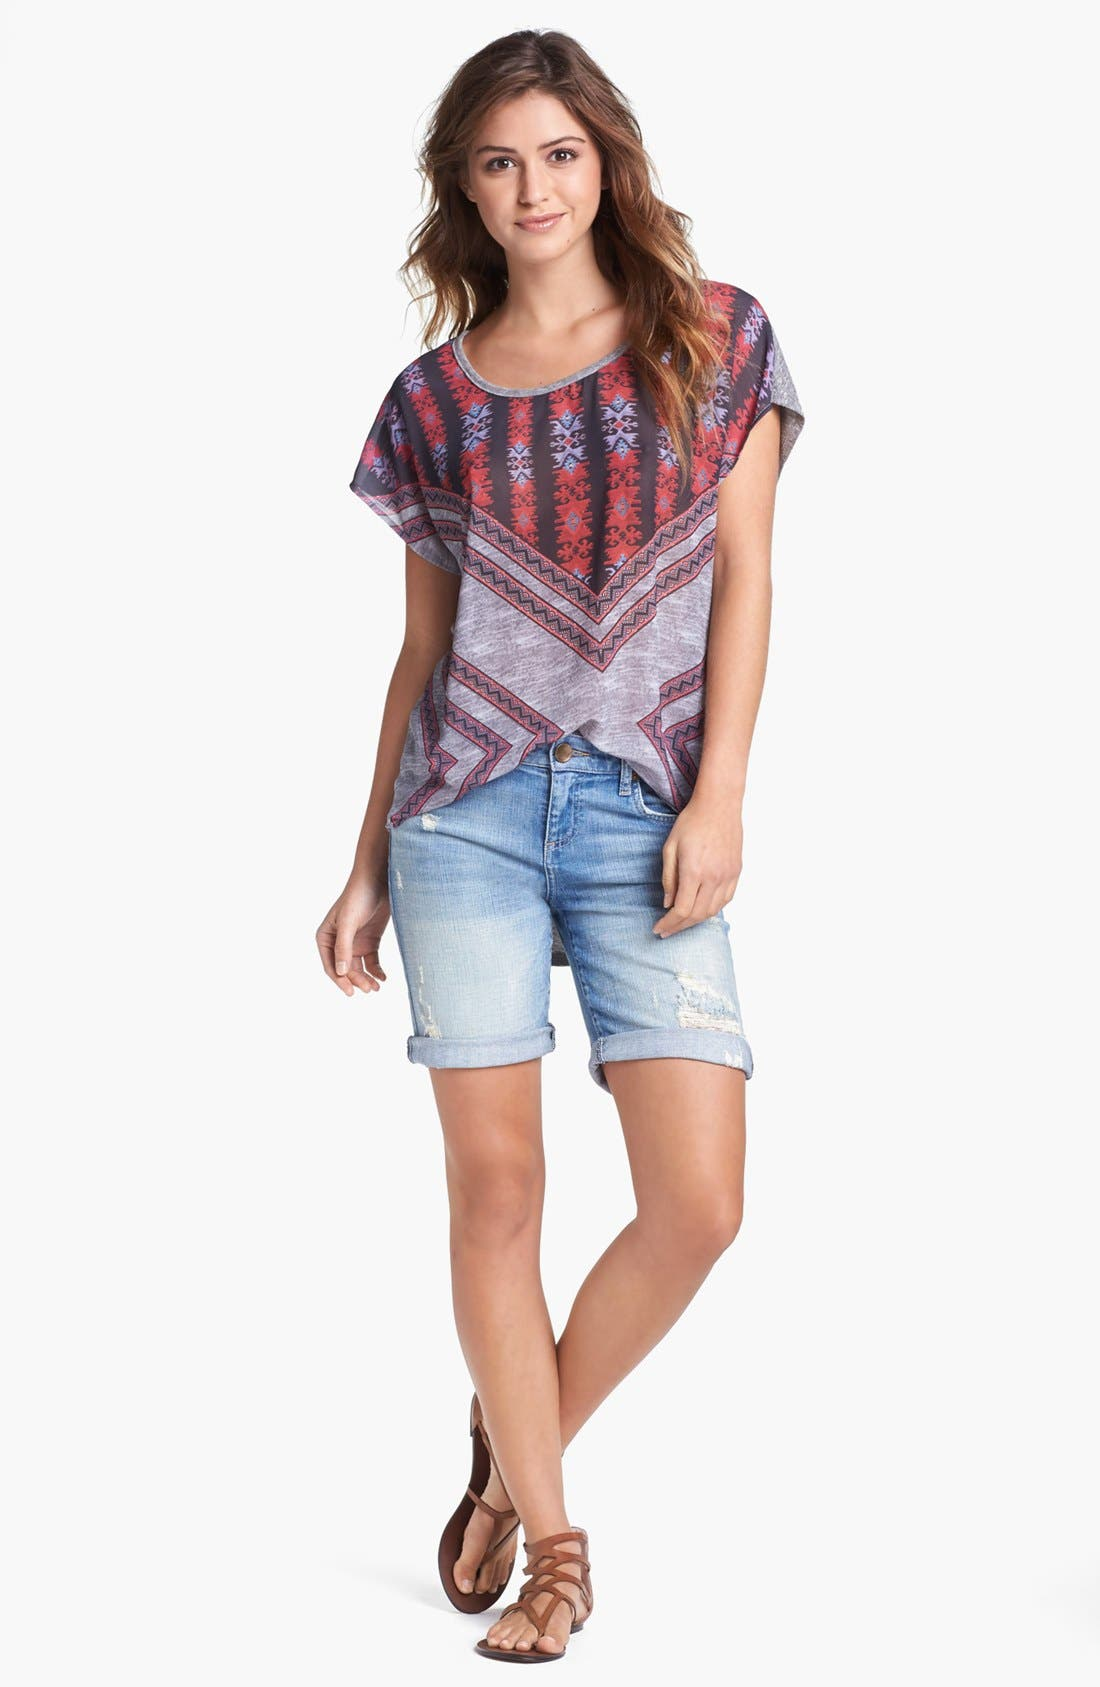 Alternate Image 1 Selected - Bobeau Tee & KUT from the Kloth Denim Shorts